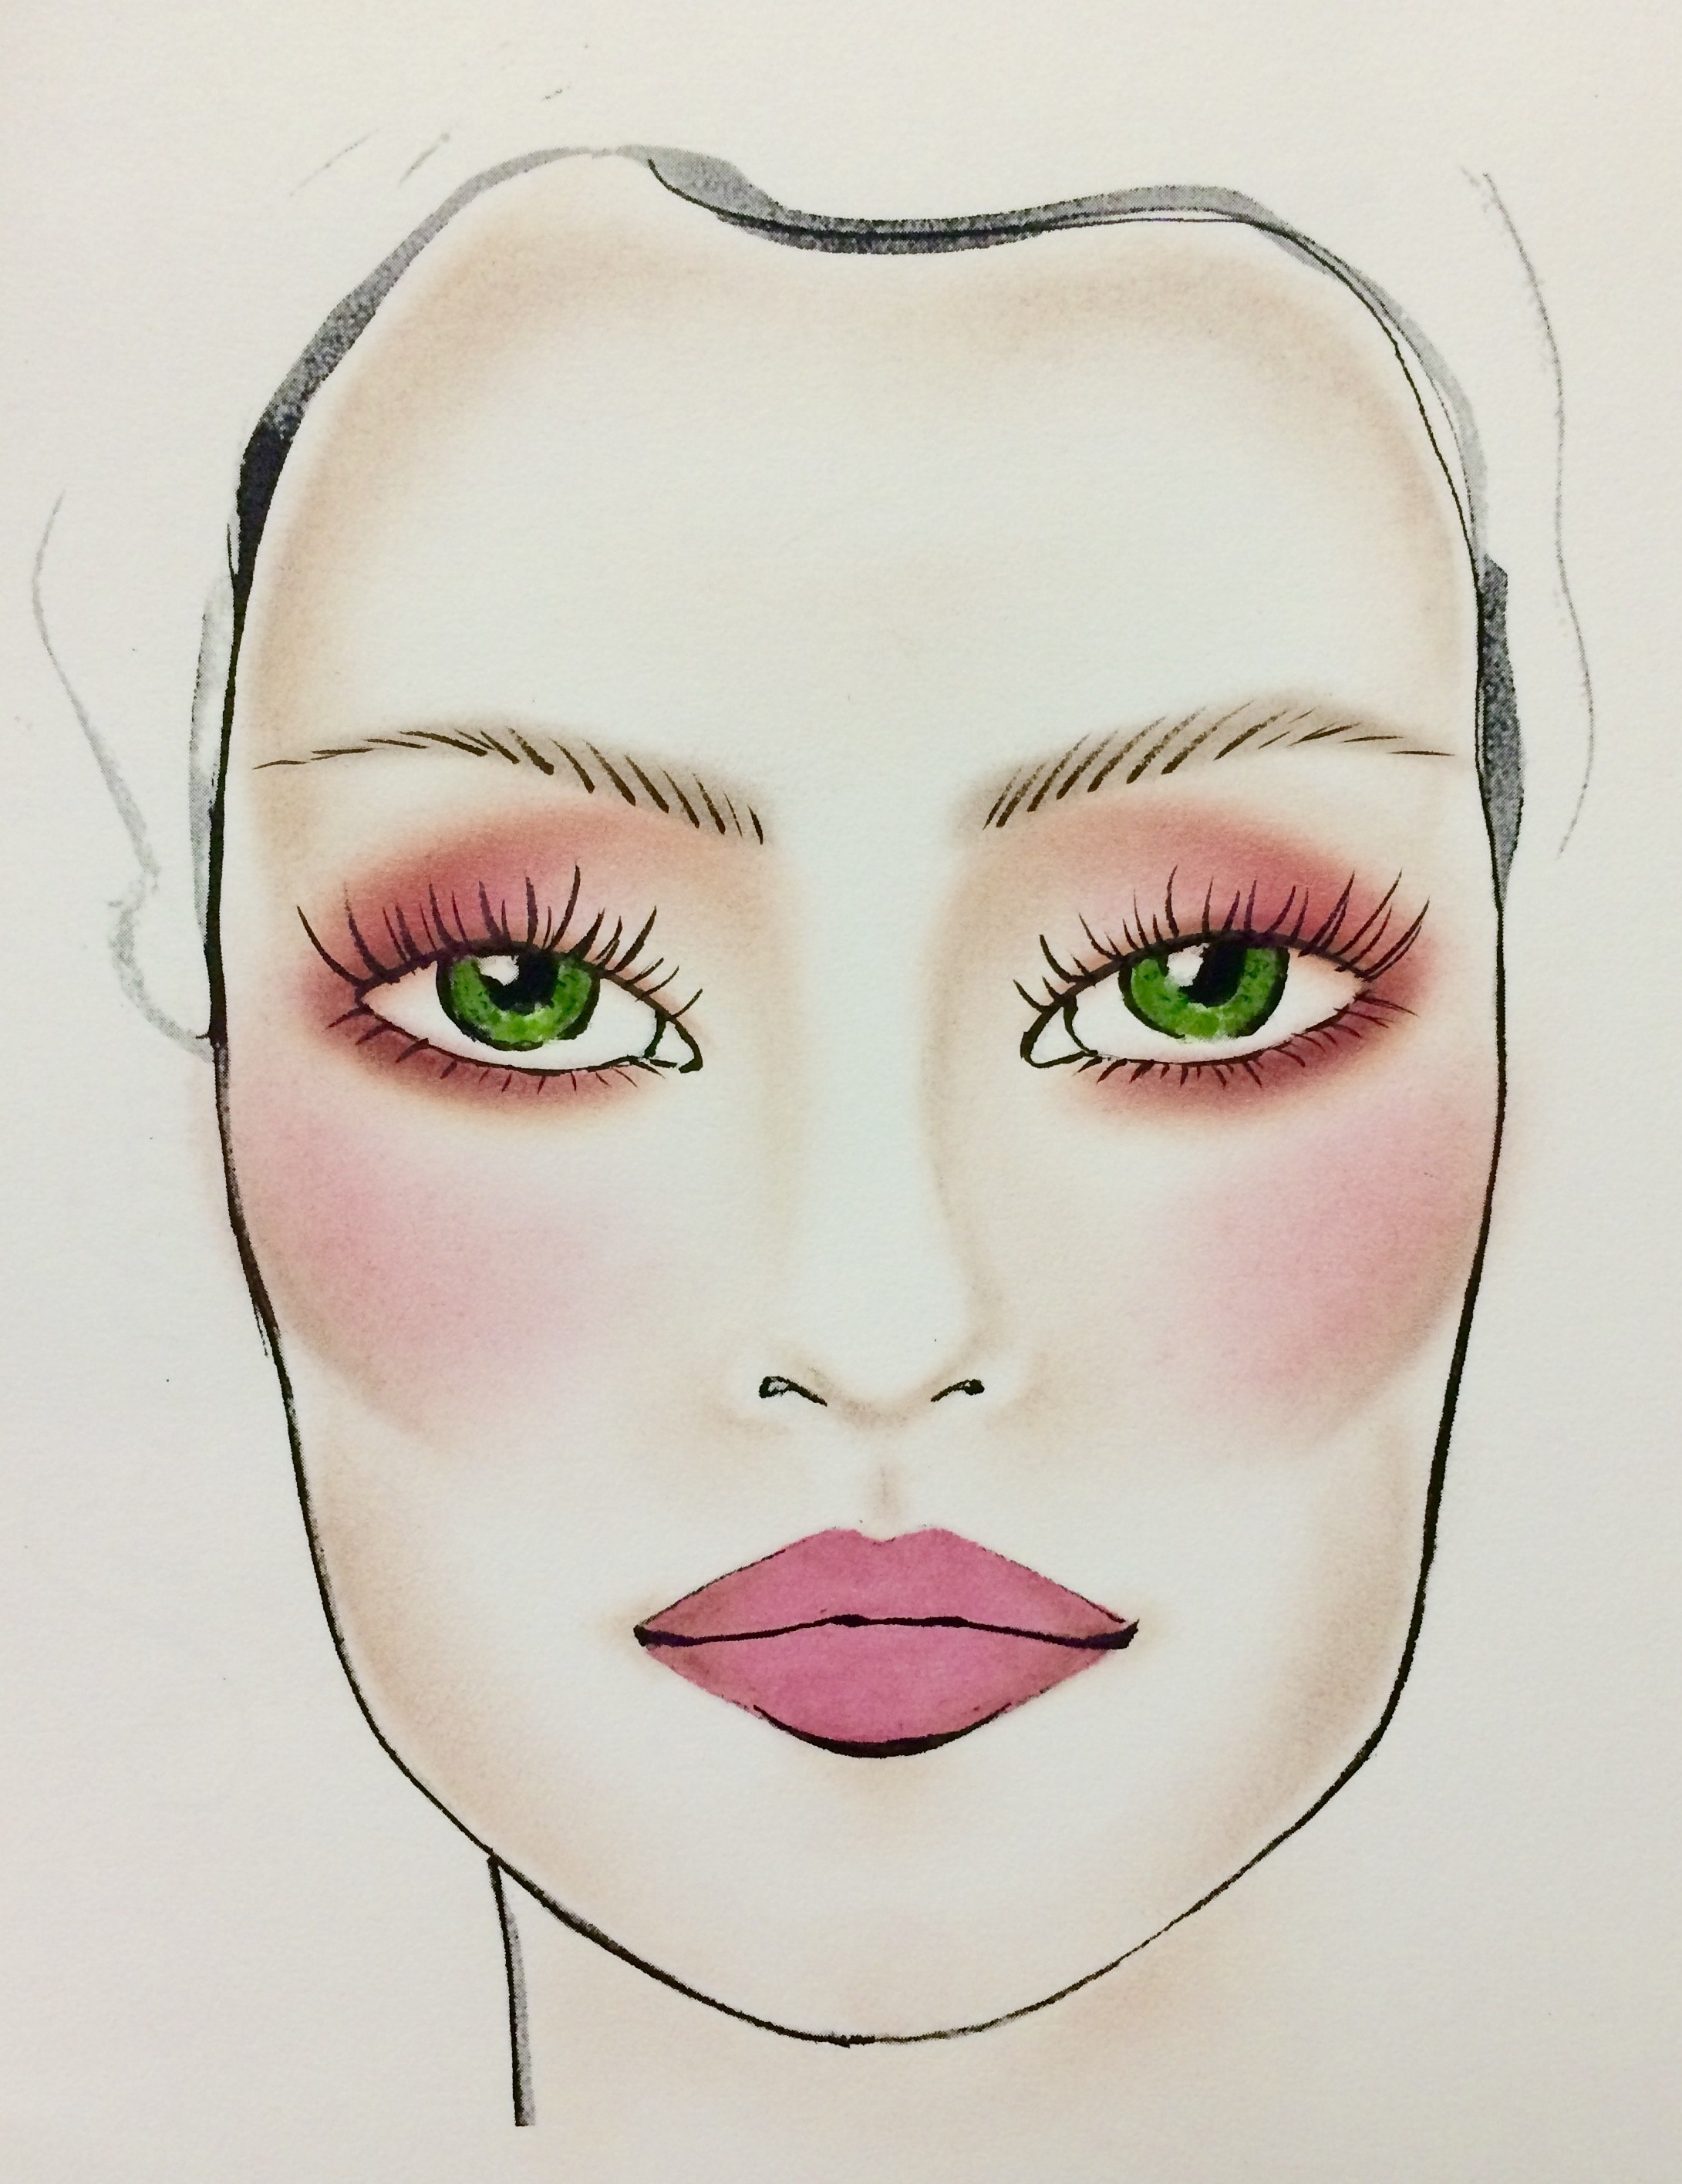 The Most Gorgeous Makeup For Green Eyes | Huffpost Life with regard to What Color Eyeshadow For Green Eyes And Dark Brown Hair